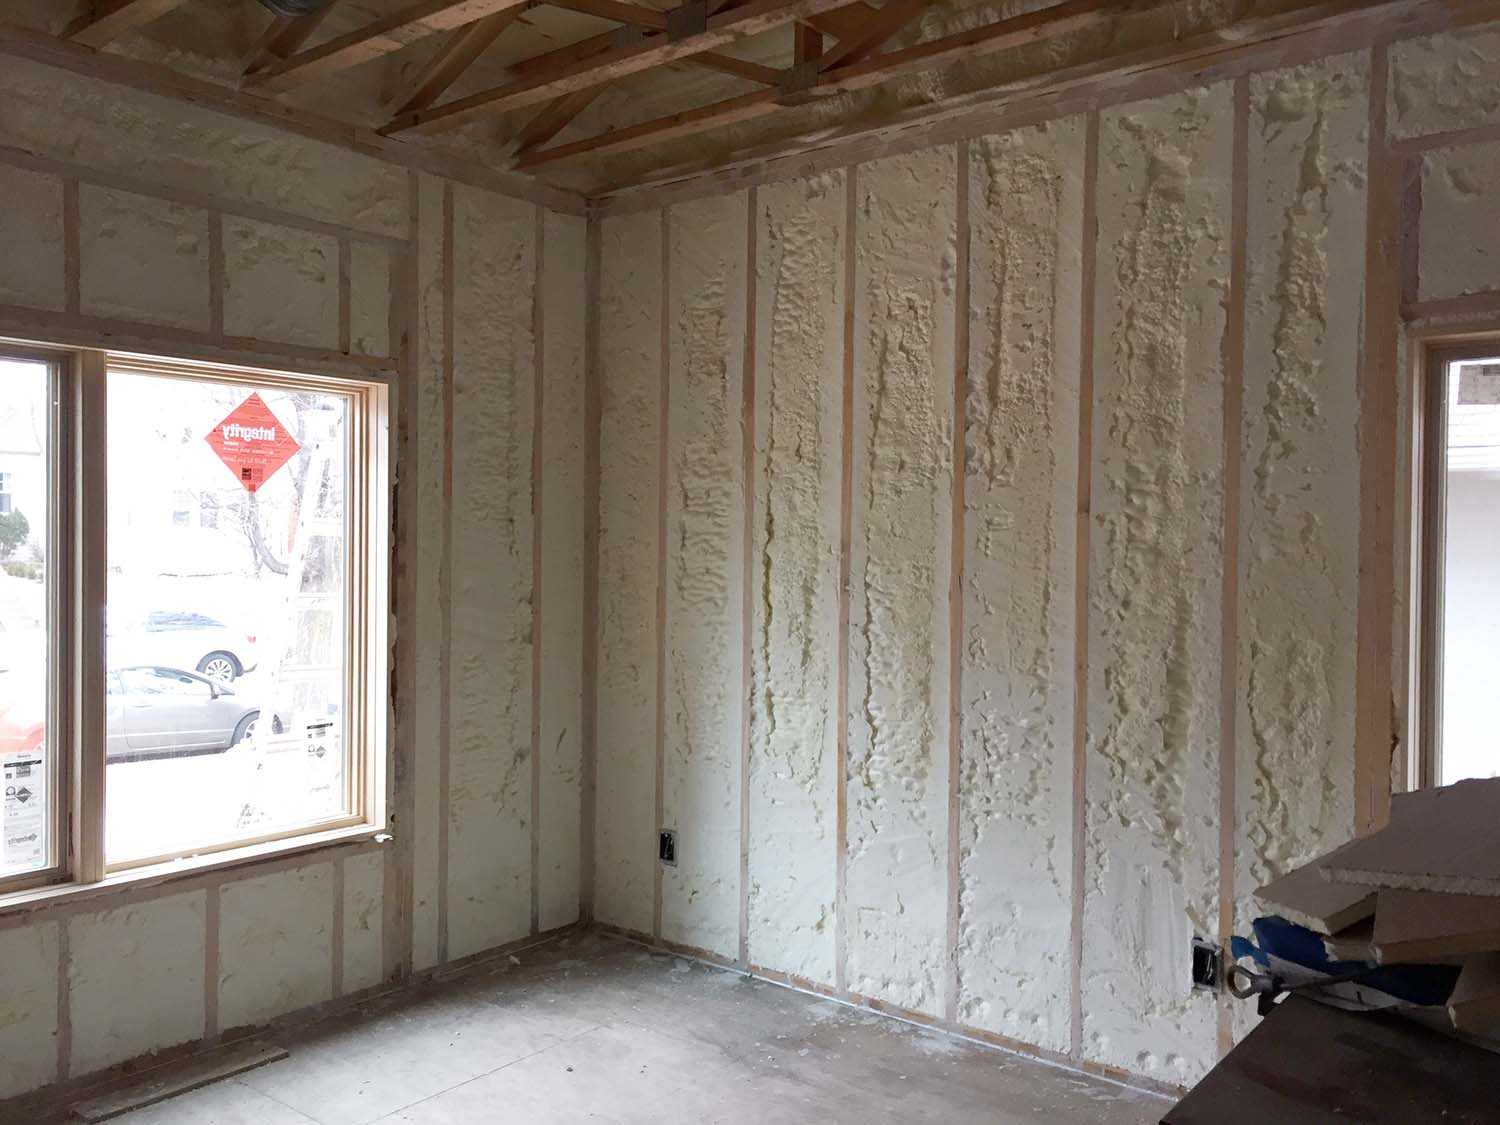 031217 insulation in front room.jpg